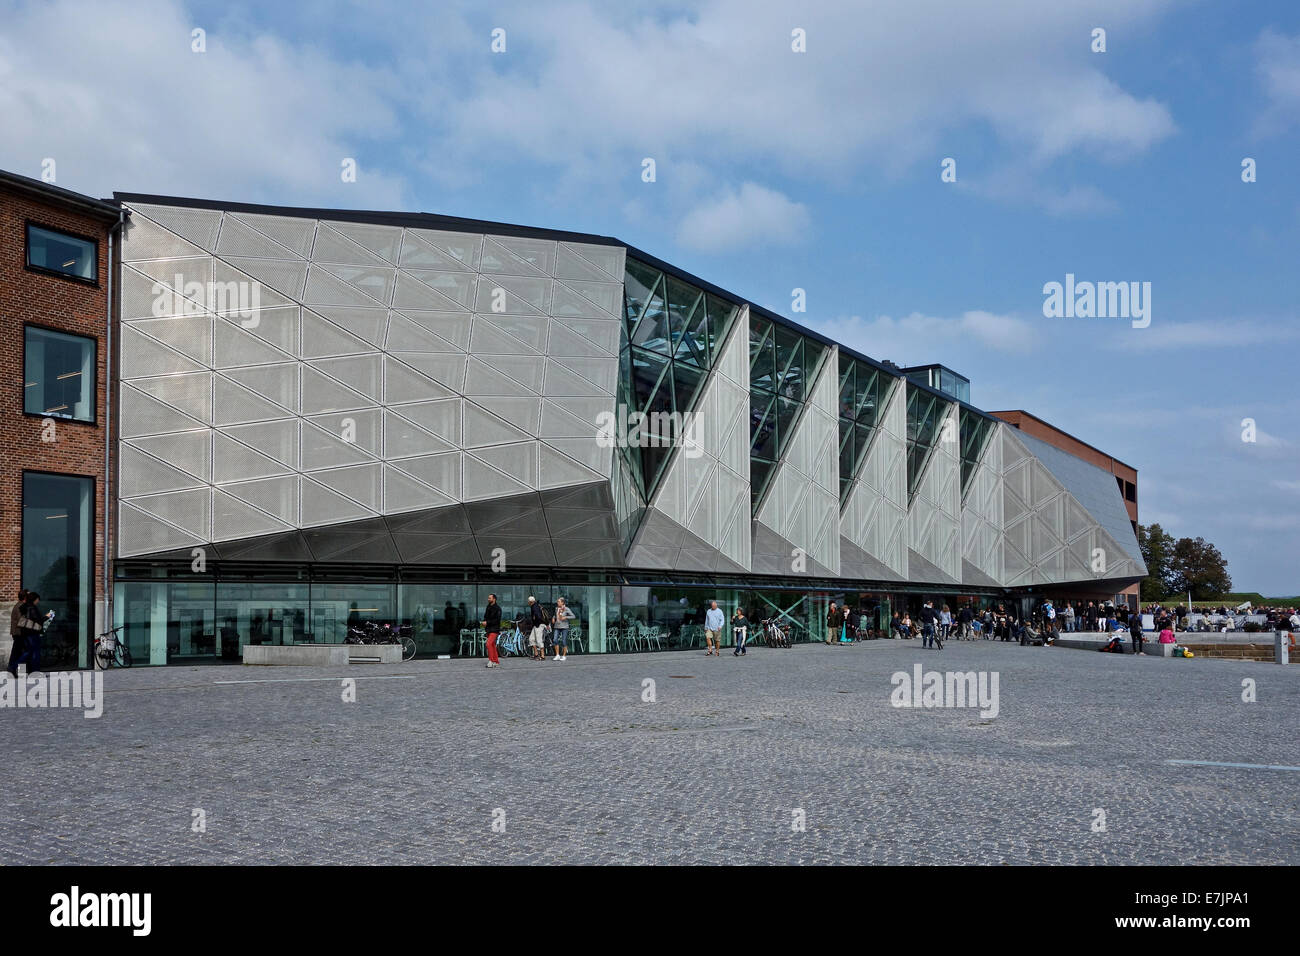 Side view of Kulturvaerftet og Bibliotek (The Culture Yard and Library) on the waterfront in Elsinore Denmark - Stock Image